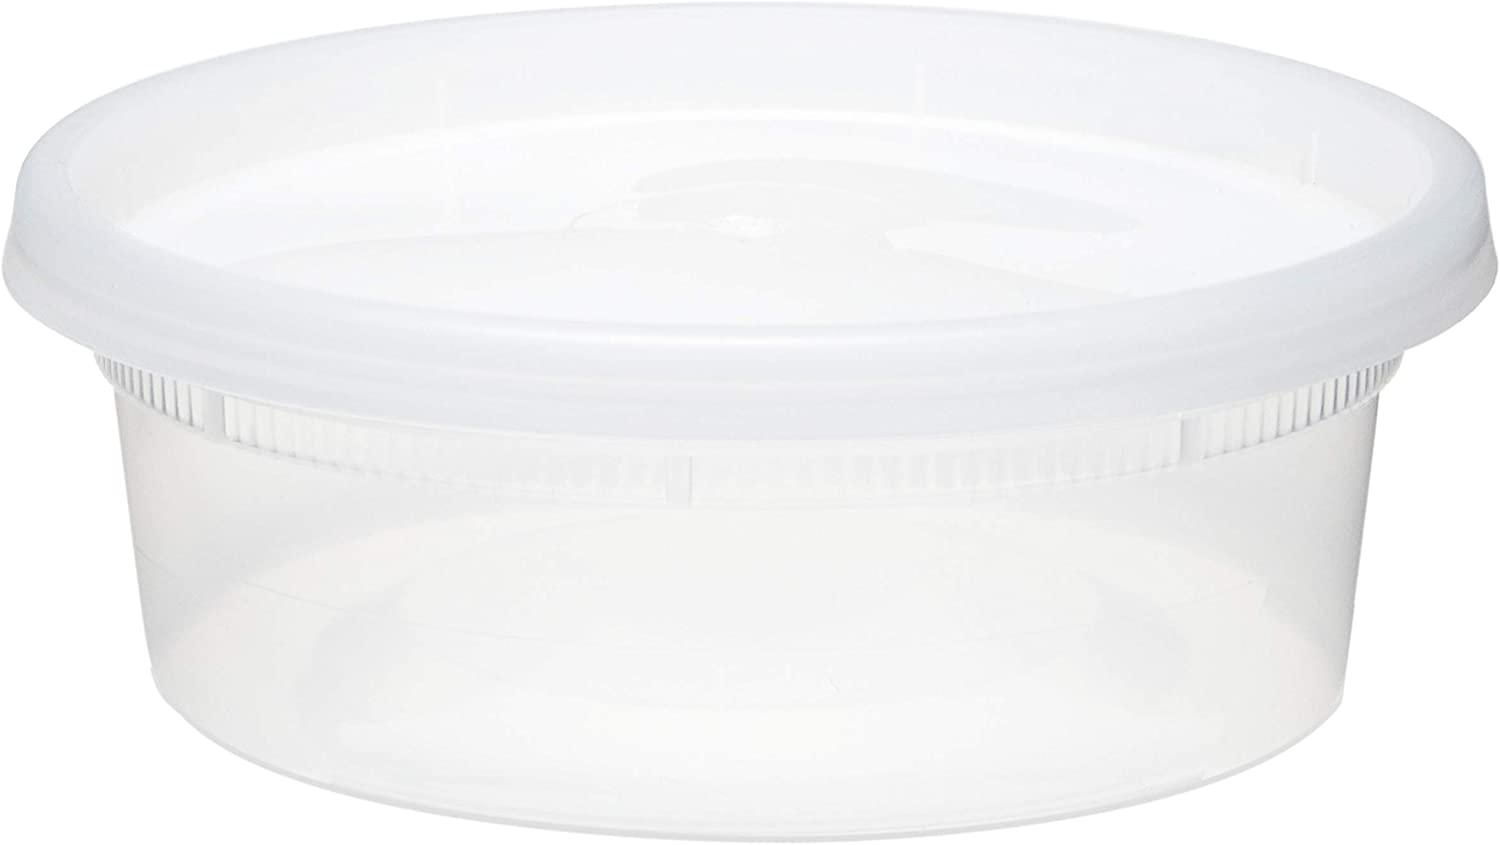 Soup Containers with Lids, Plastic Containers with Lids for Soup/Food Storage, Perfect Containers for Food Storage, Microwave Safe Food Containers with Lids (240 Pcs, with Lid, 8 Oz)